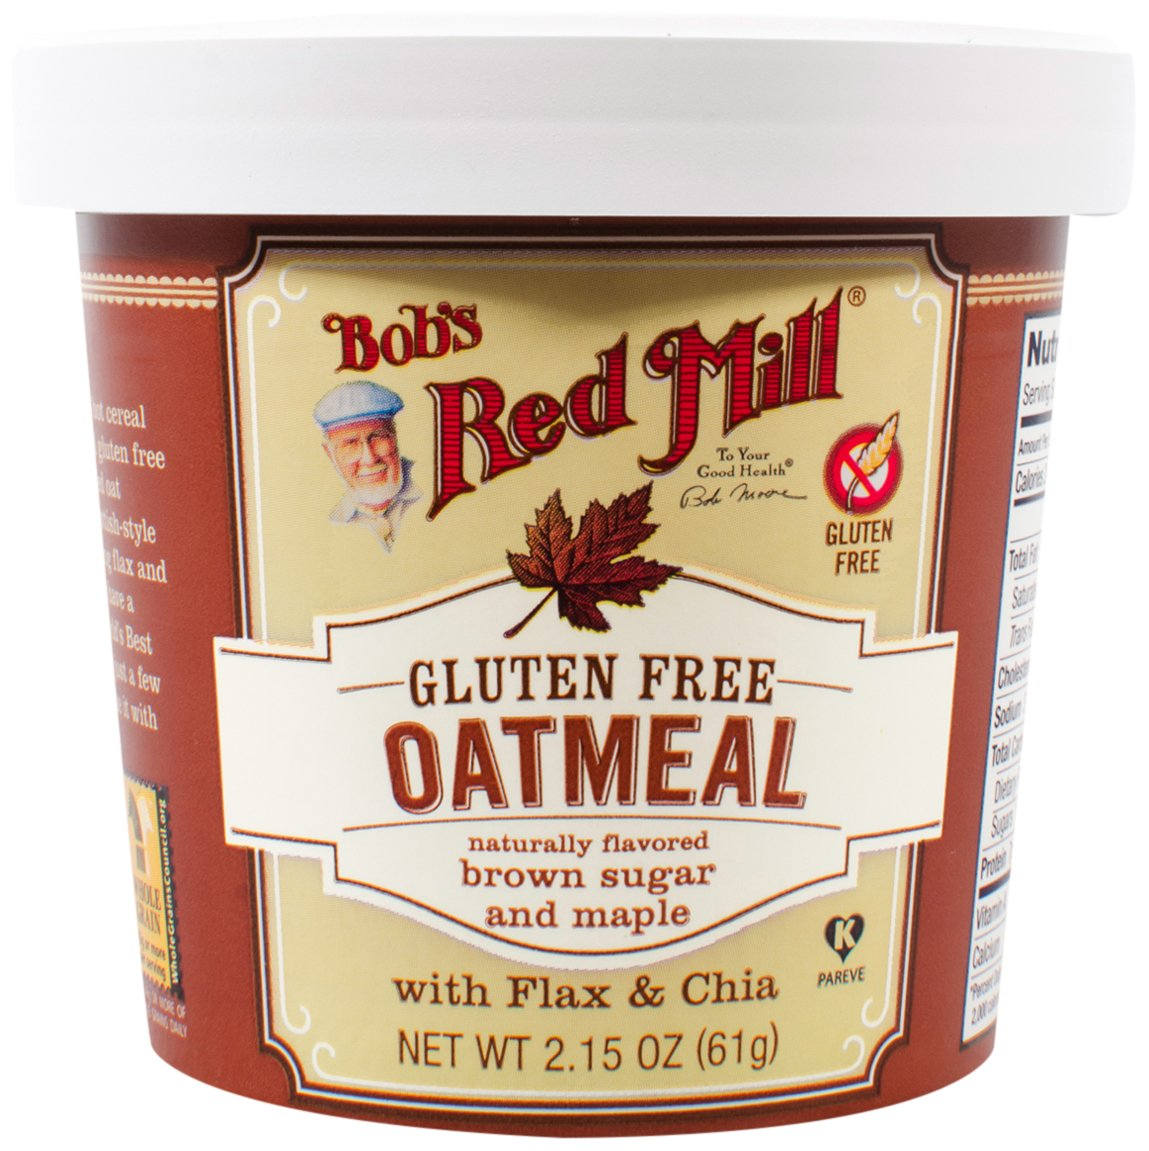 Bob's Red Mill Gluten Free Oatmeal Cup, Maple Brown Sugar, 8 Count